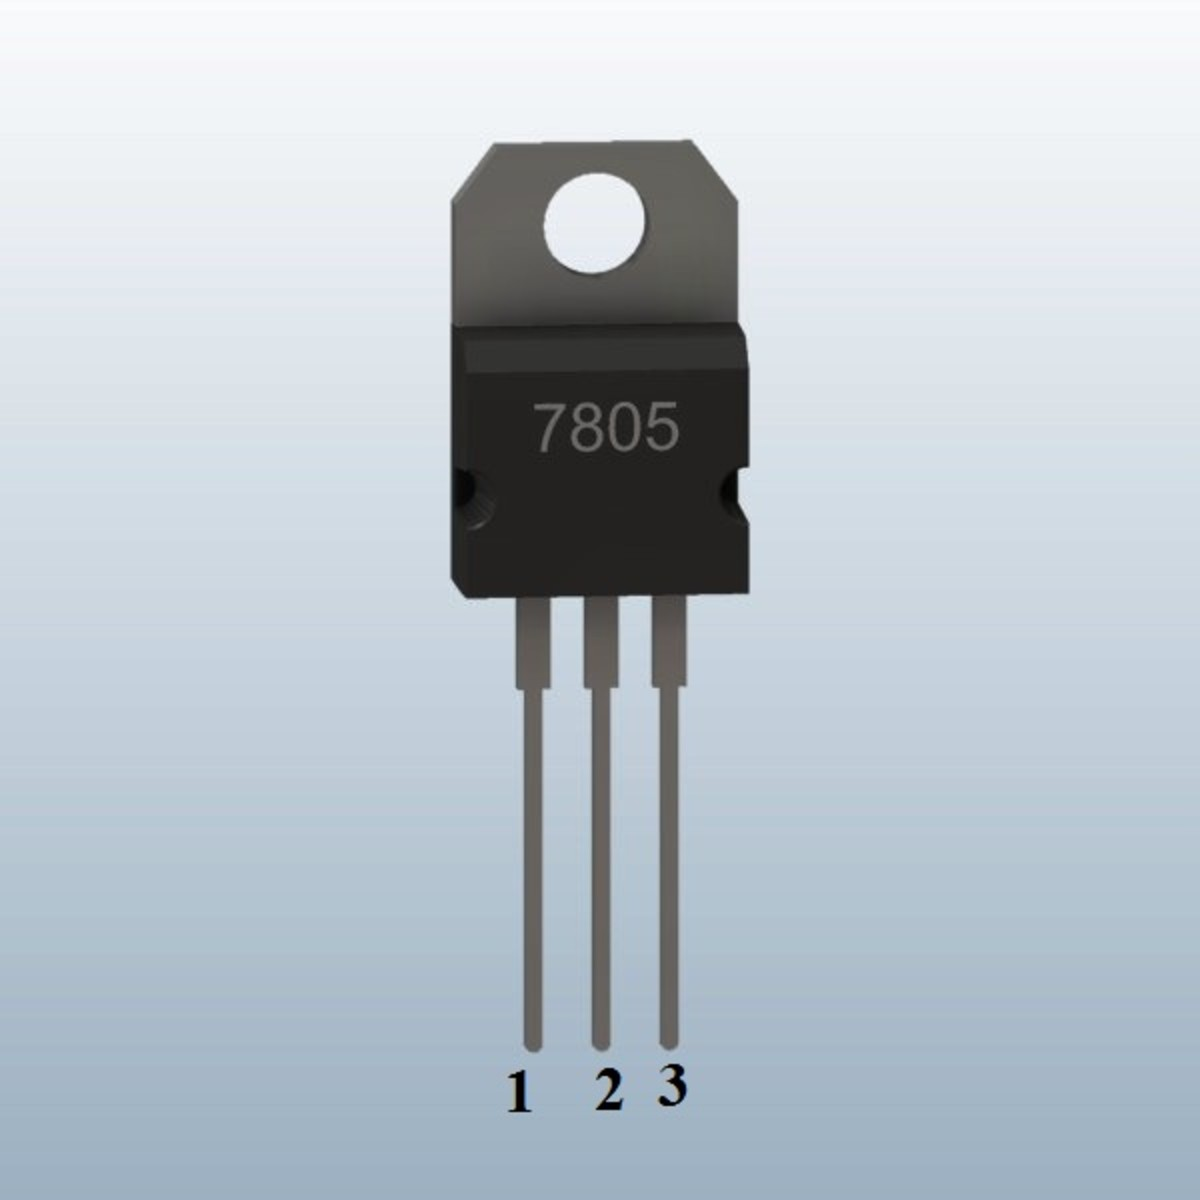 7805 Pin Configuration And Voltage Regulator Circuit